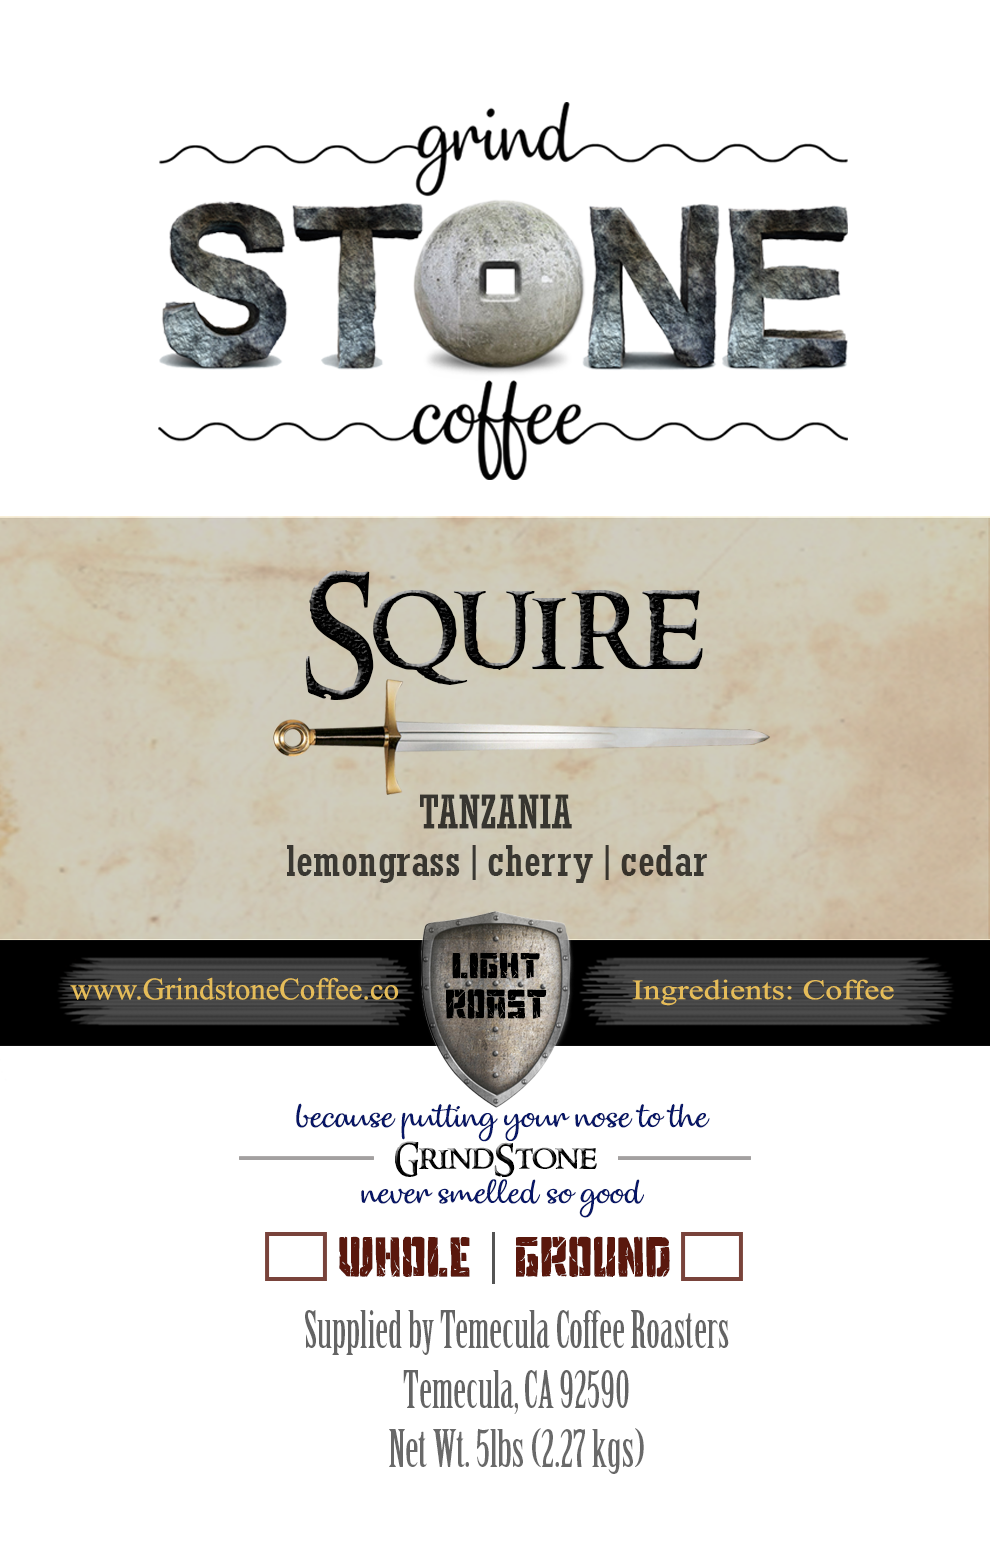 Squire (Tanzania) - Monthly Subscription